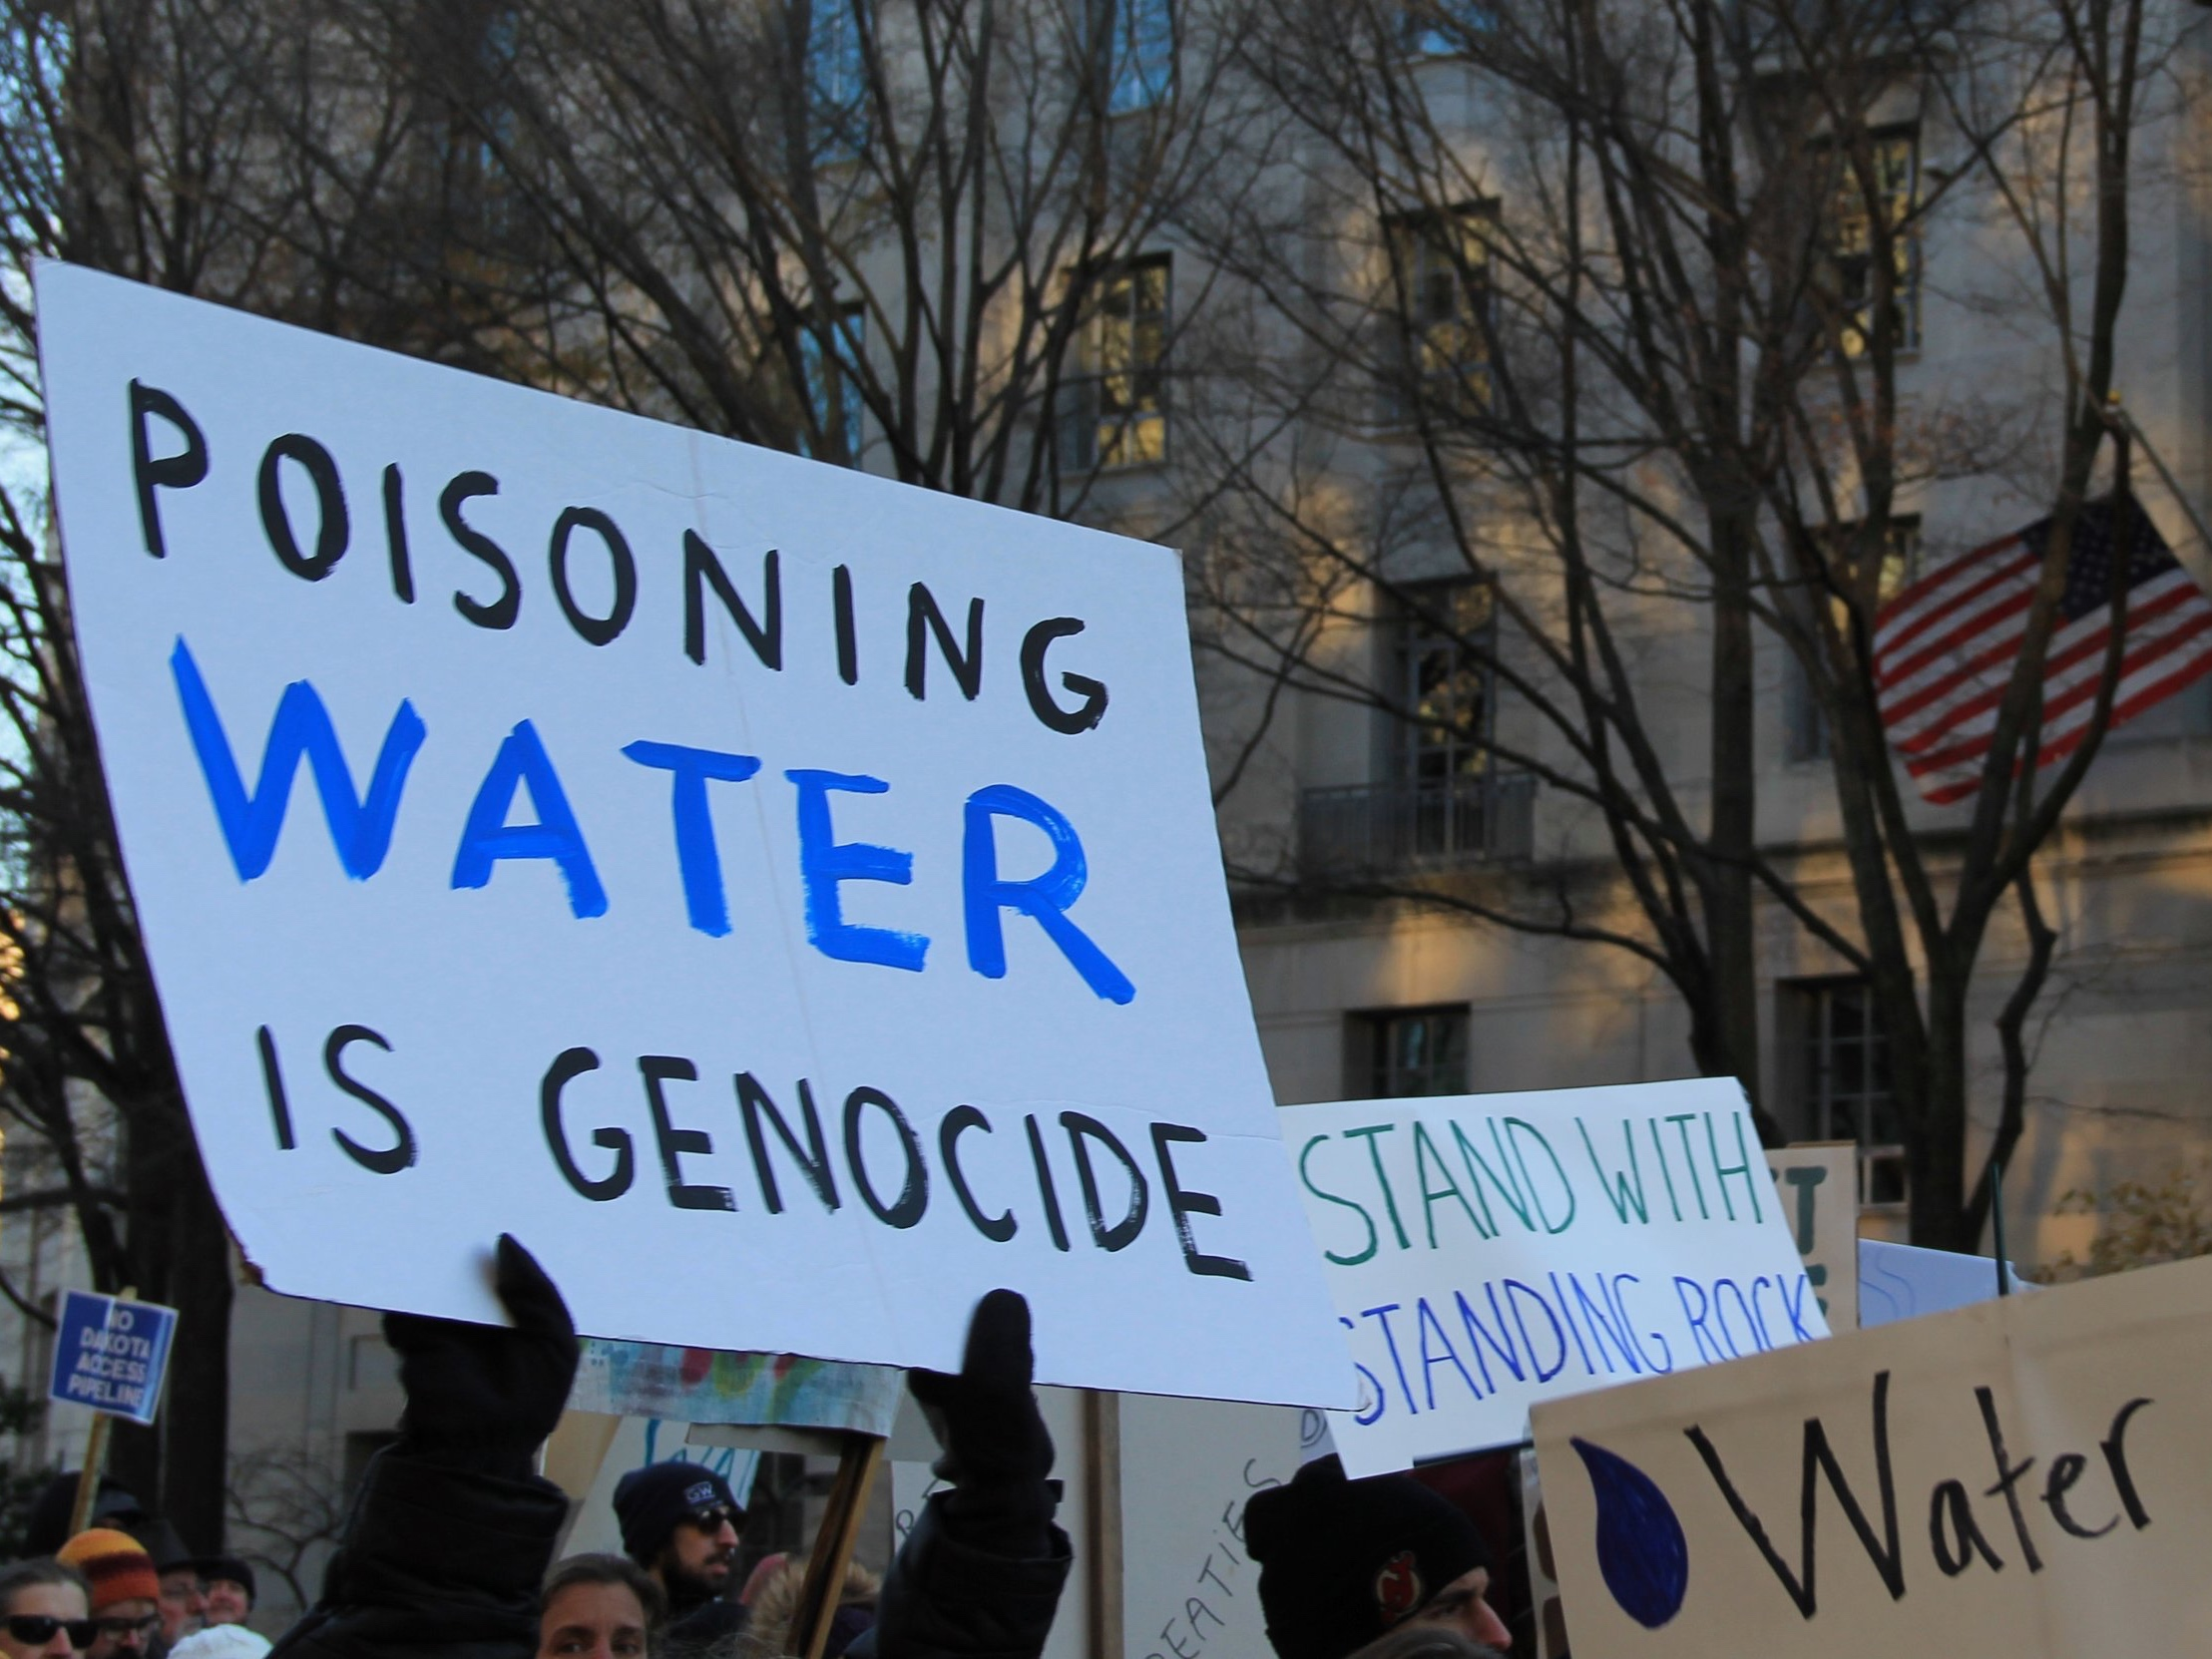 - Demonstration in support of Standing Rock to stop DAPL occurred all over the world throughout 2016 and in March 2017 in Washington, DC (source).